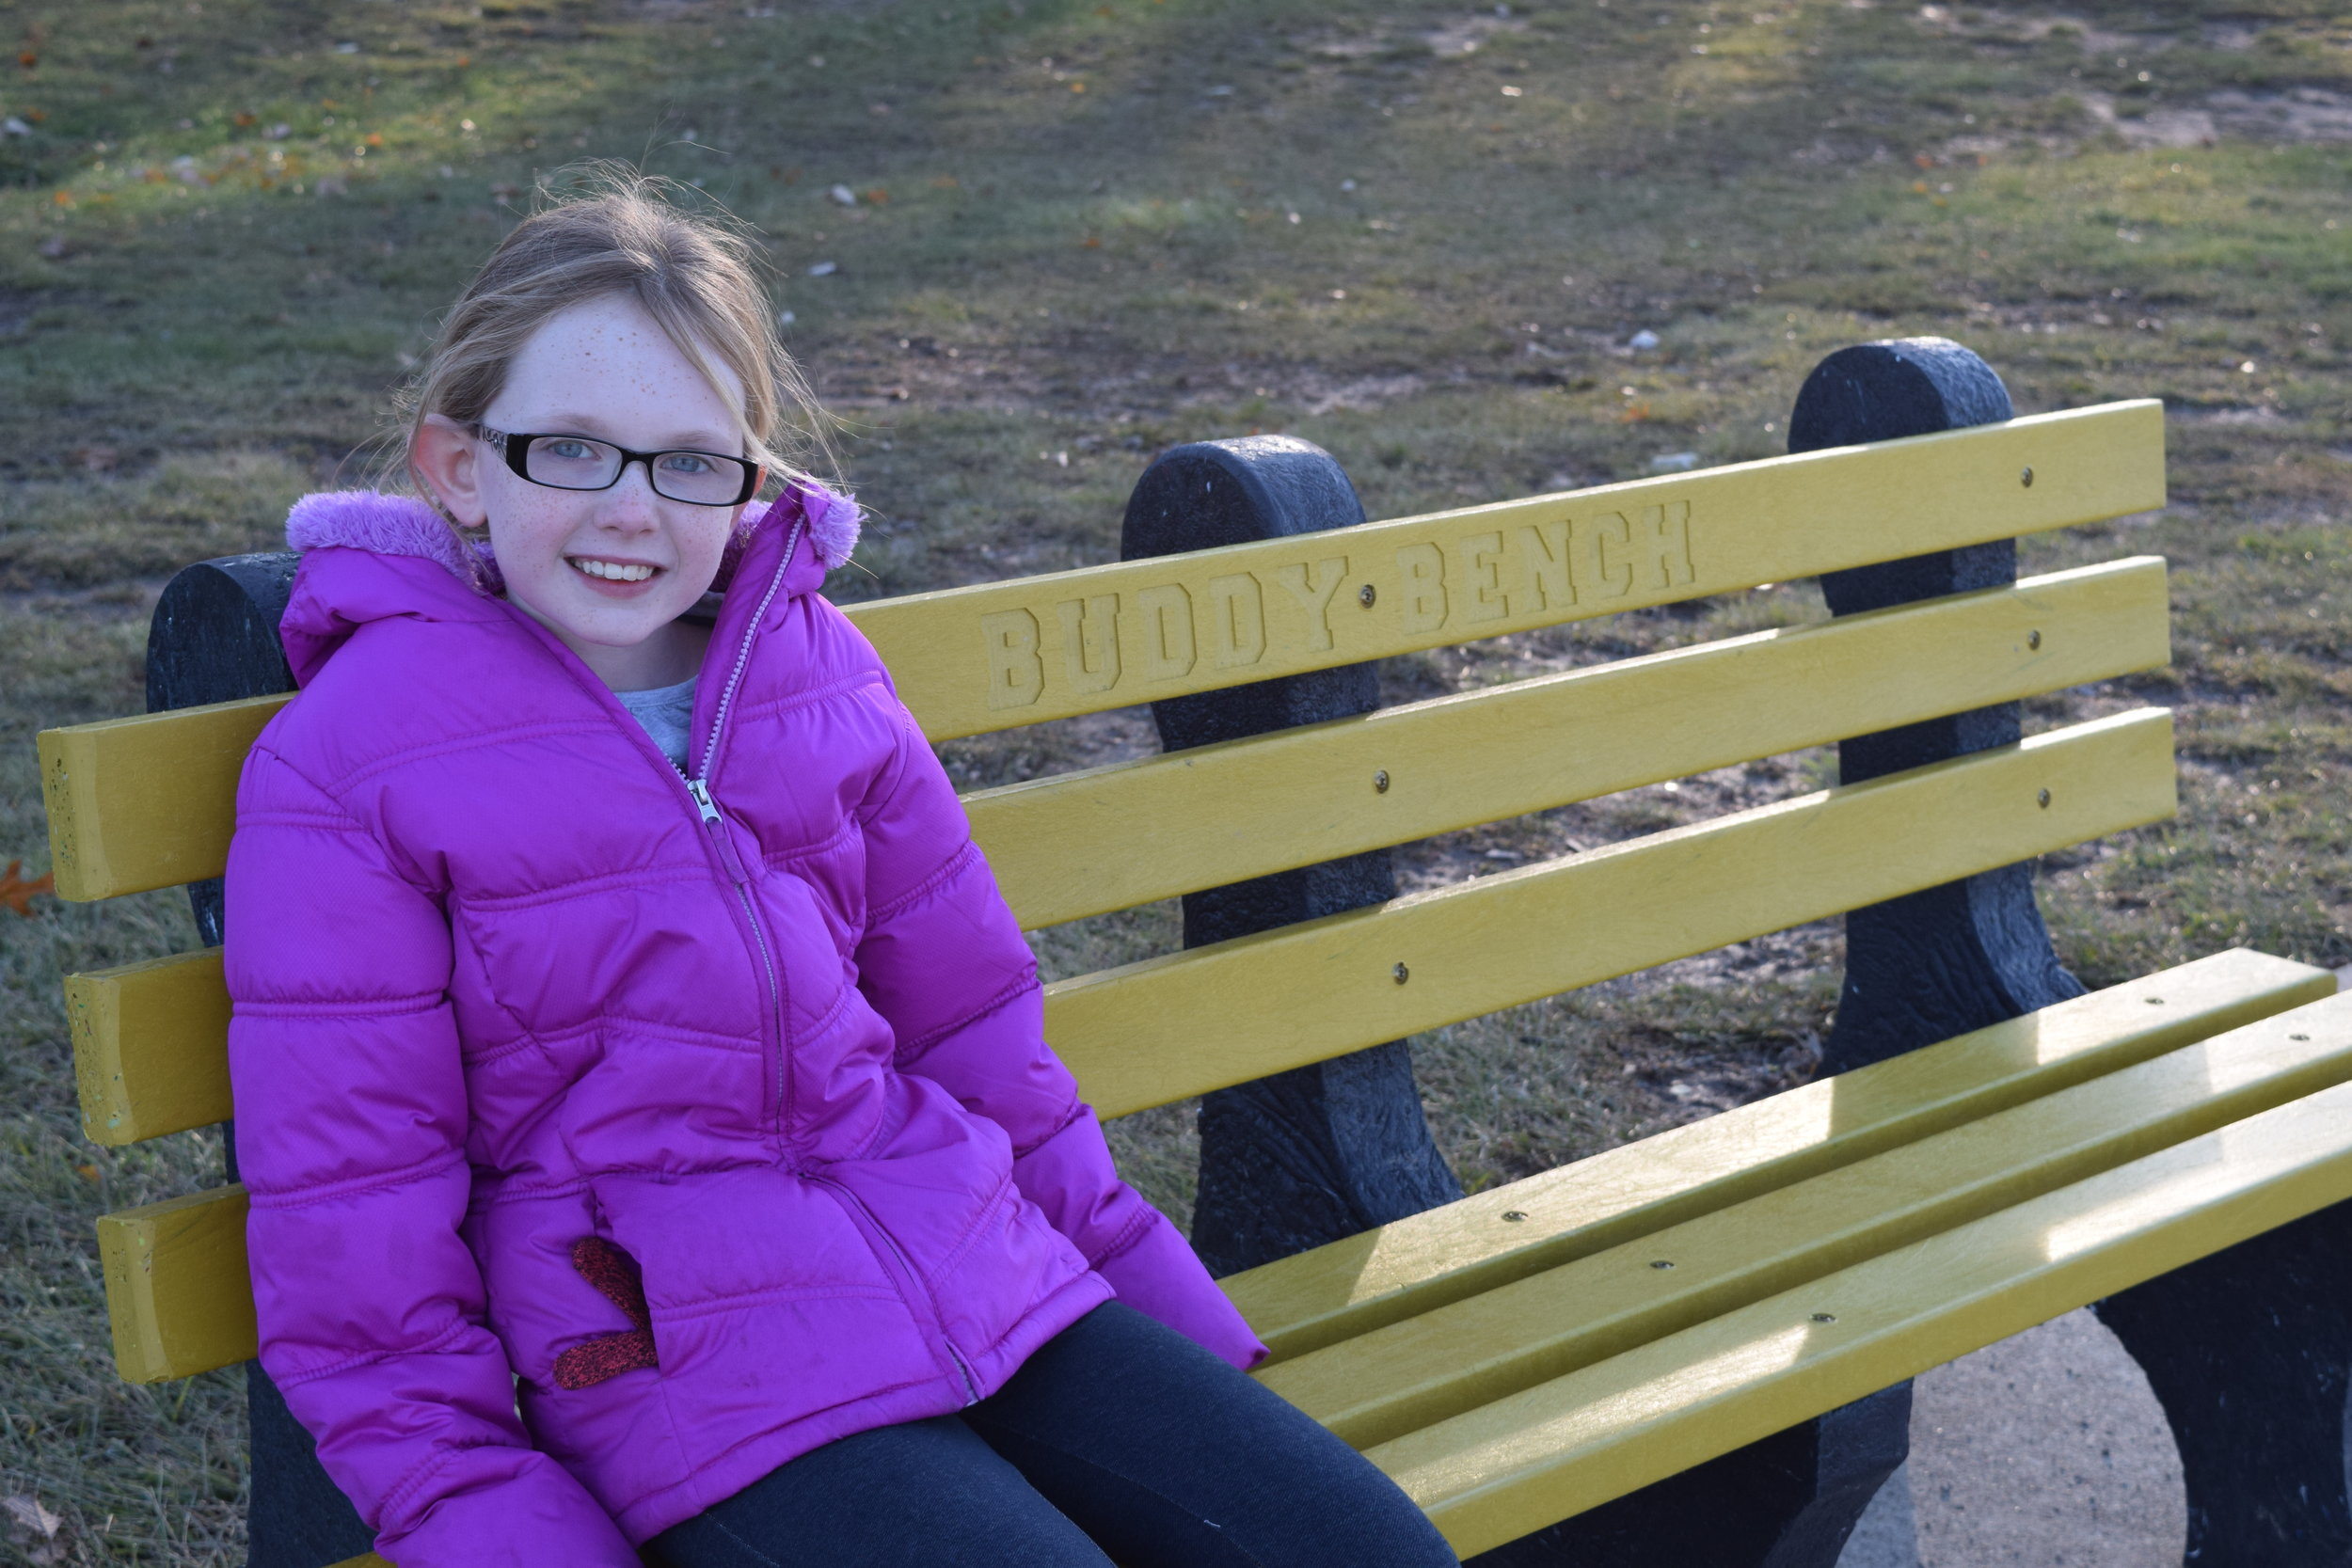 About - Find out about how Sammie heard about Buddy Benches and why she wanted them for her school.